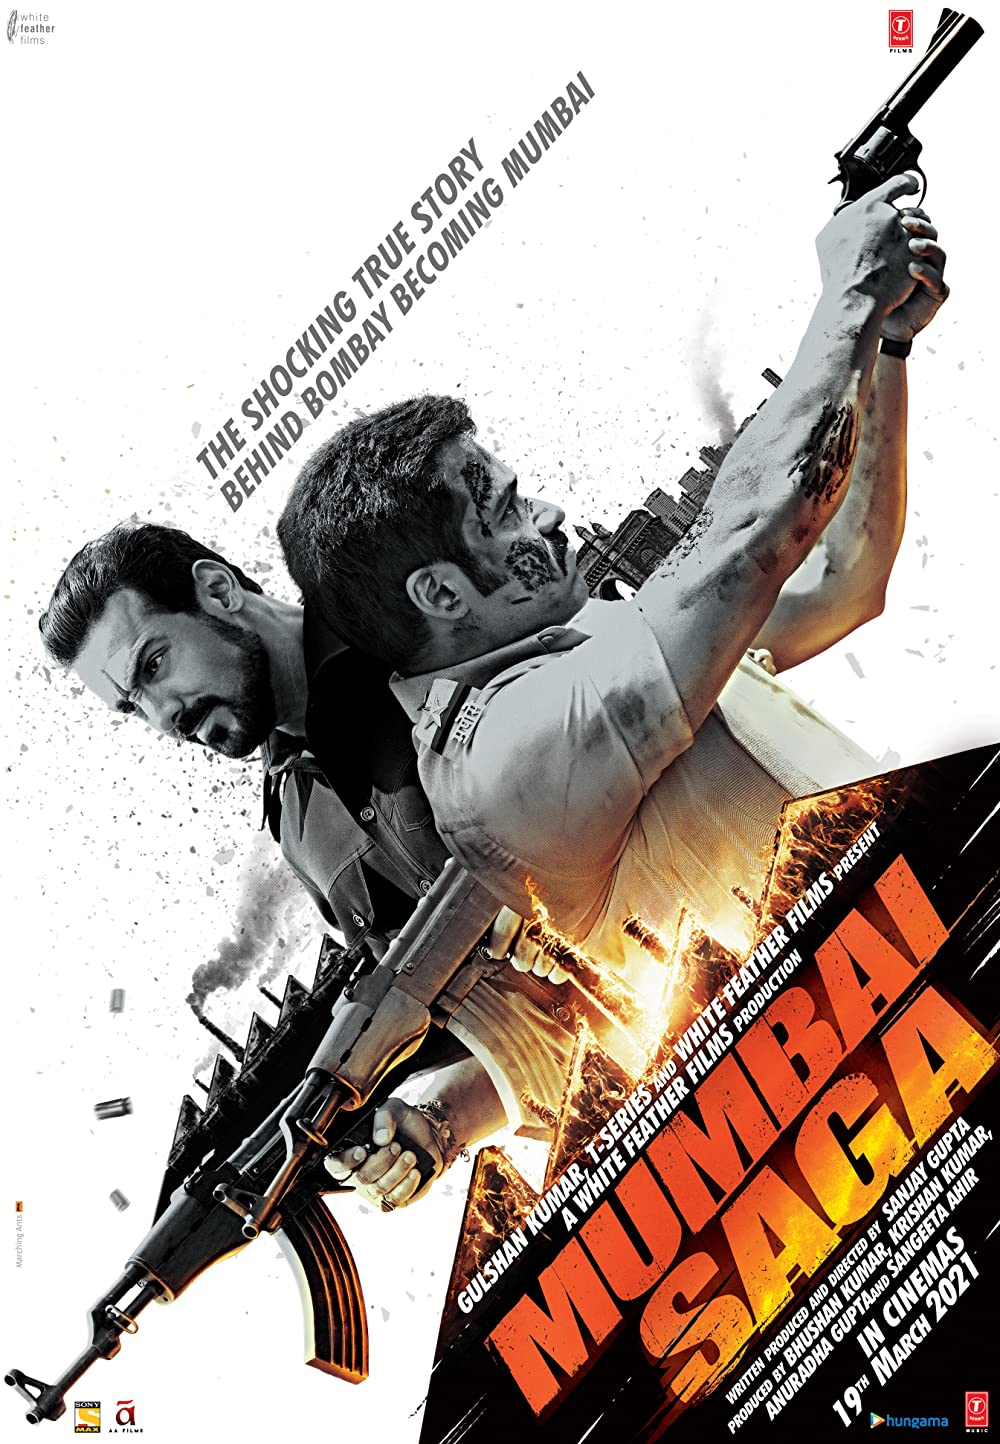 Mumbai Saga 2021 Hindi Movie 480p AMZN HDRip ESub 400MB x264 AAC